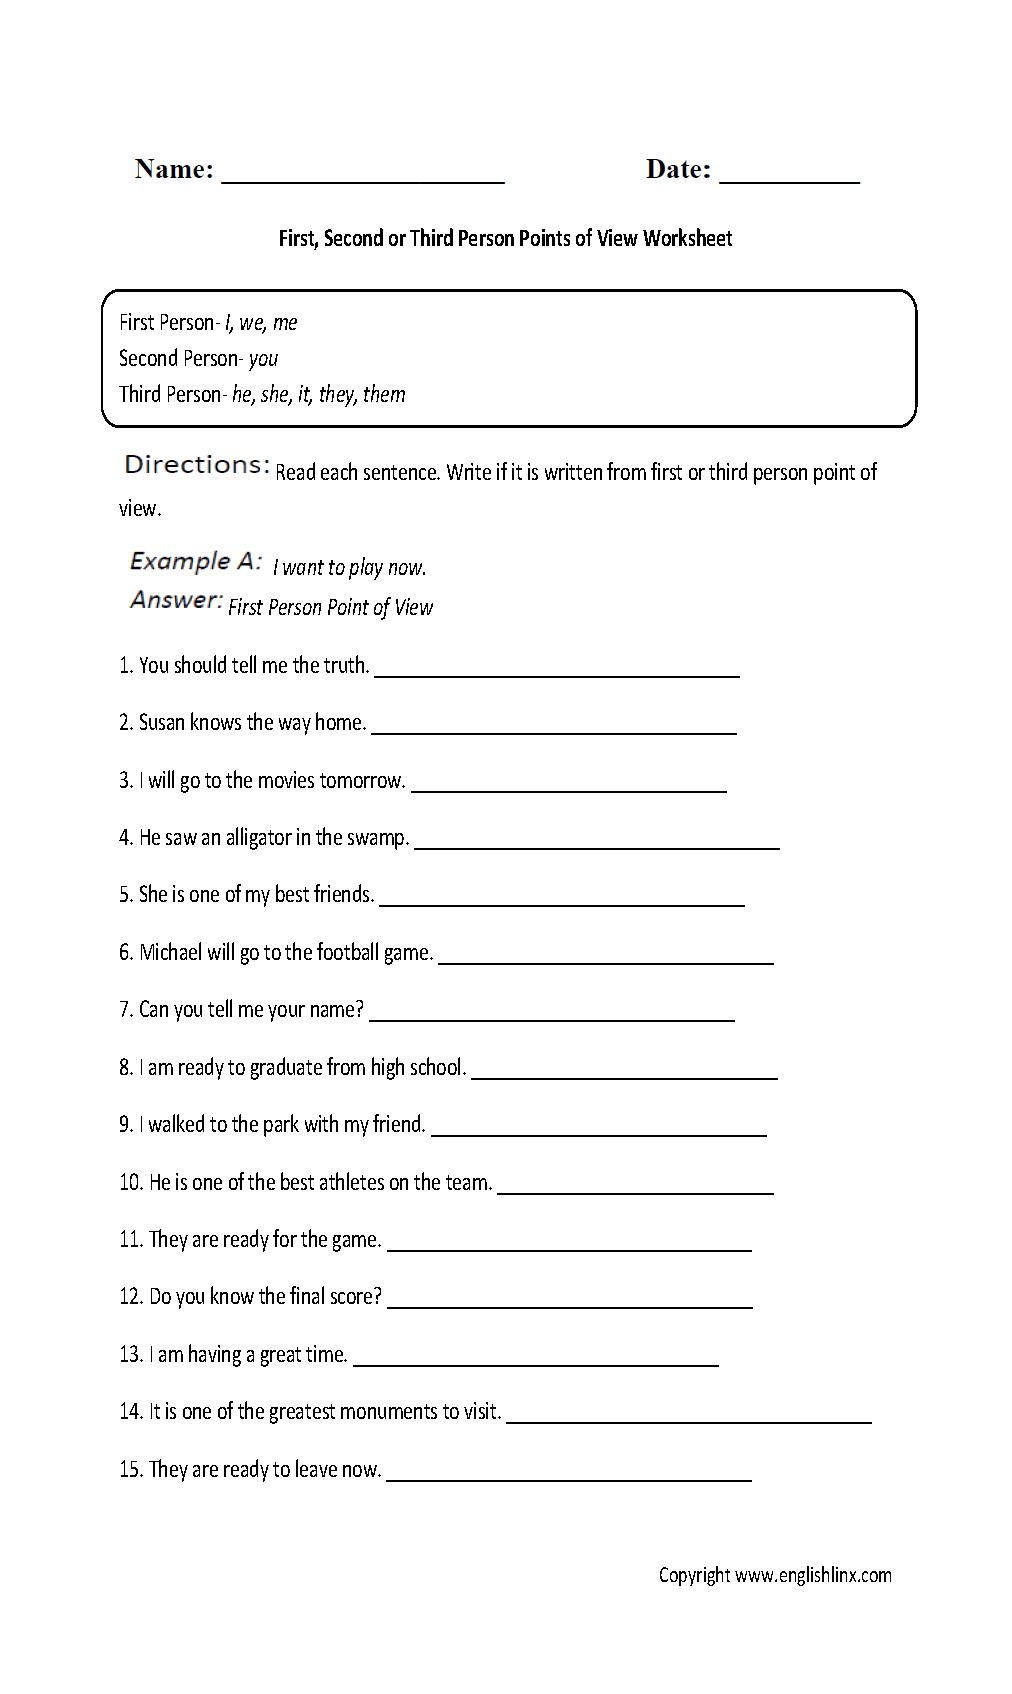 Weirdmailus  Seductive Englishlinxcom  Point Of View Worksheets With Marvelous Point Of View Worksheet With Charming Inferring Character Traits Worksheet Also Molarity Worksheet With Answers In Addition Wave Equation Worksheet And High School Printable Worksheets As Well As Perfect Verb Tense Worksheet Additionally Nd Grade Reading Printable Worksheets From Englishlinxcom With Weirdmailus  Marvelous Englishlinxcom  Point Of View Worksheets With Charming Point Of View Worksheet And Seductive Inferring Character Traits Worksheet Also Molarity Worksheet With Answers In Addition Wave Equation Worksheet From Englishlinxcom